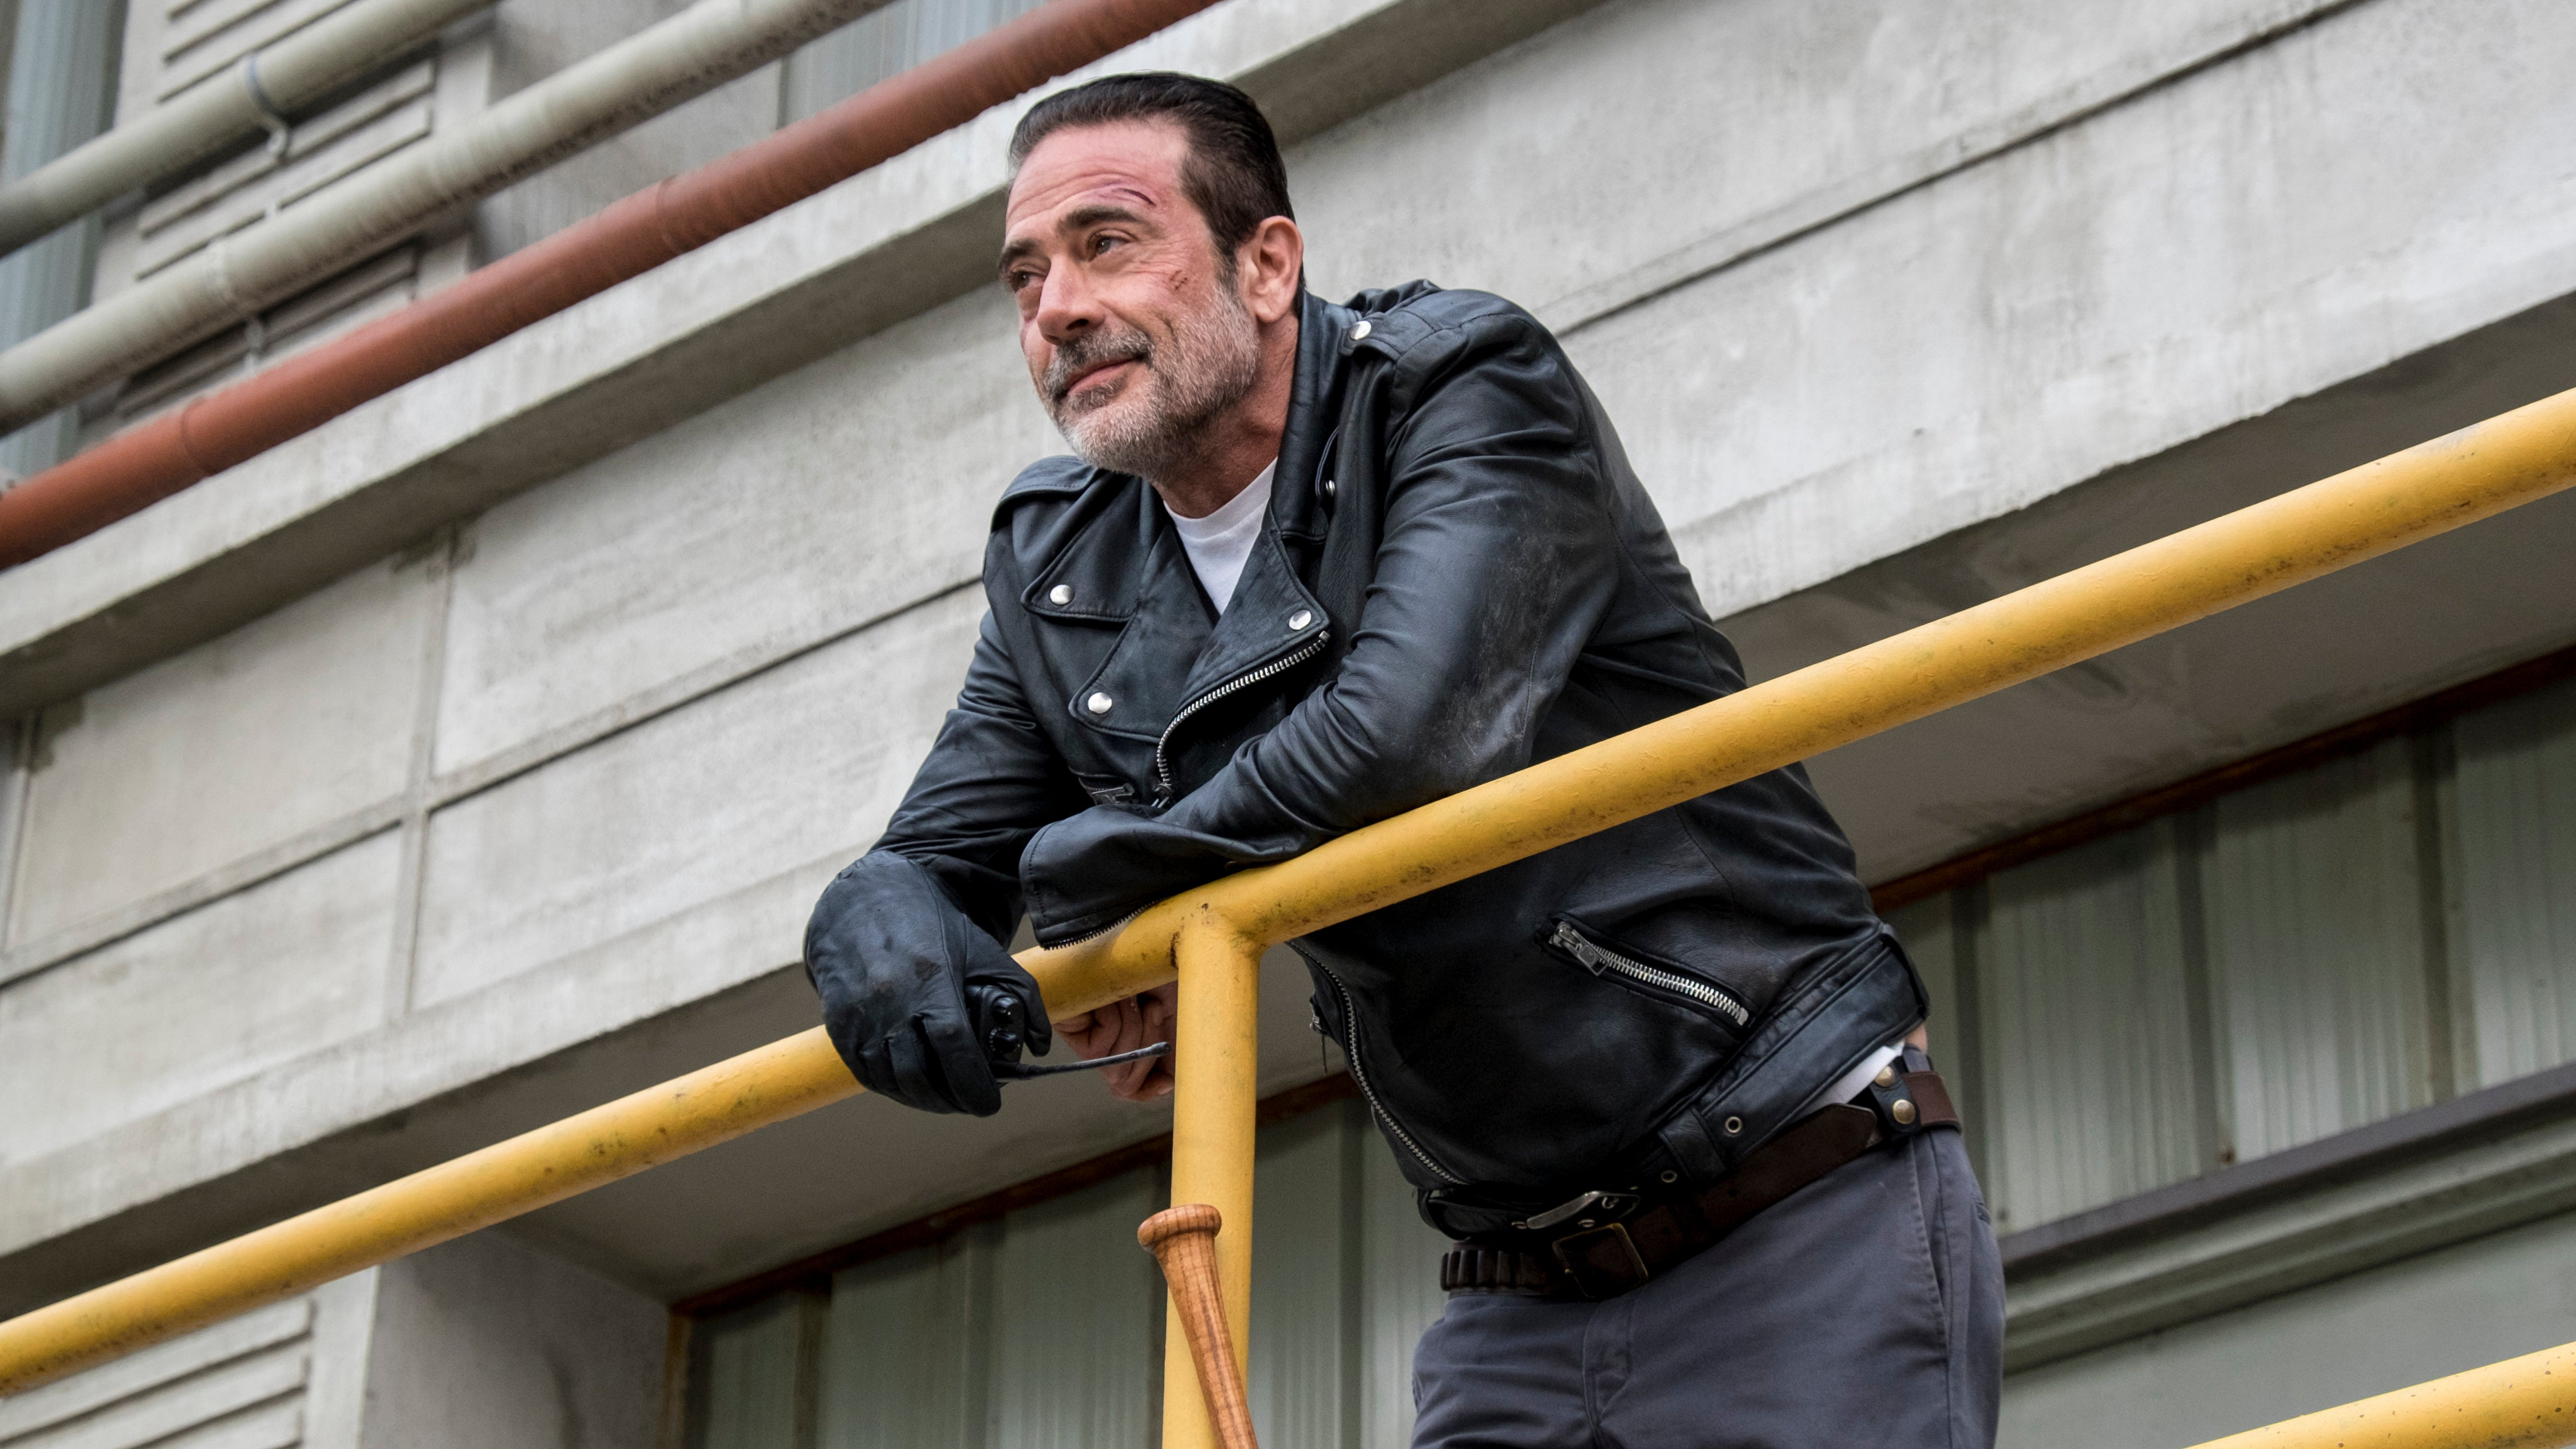 Important Announcement: The Walking Dead Was Actually Fine This Week